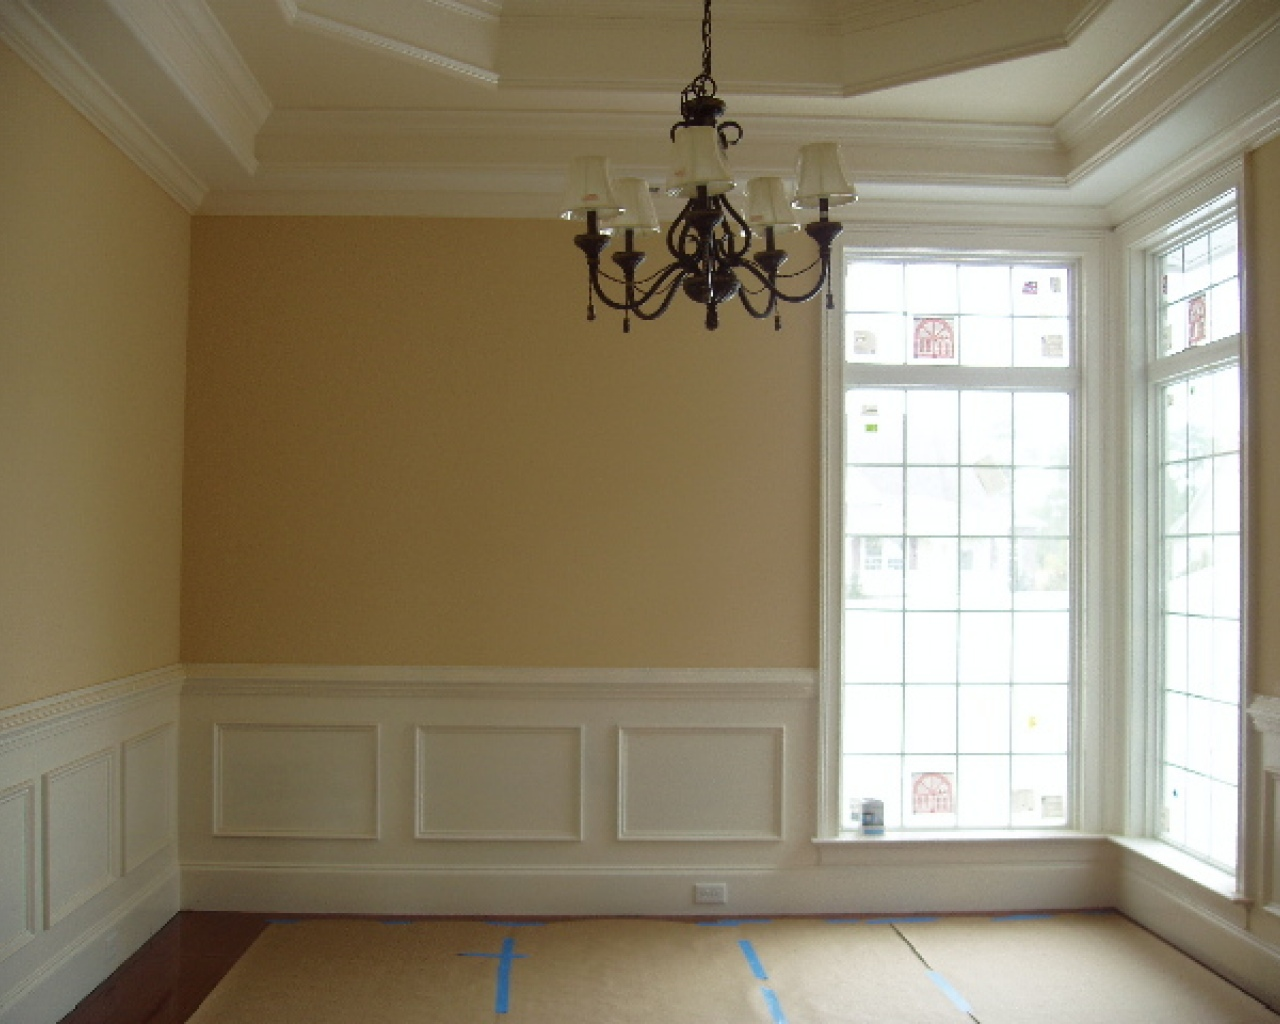 Wall paneling with white wood paneling for walls with decorative interior wall paneling